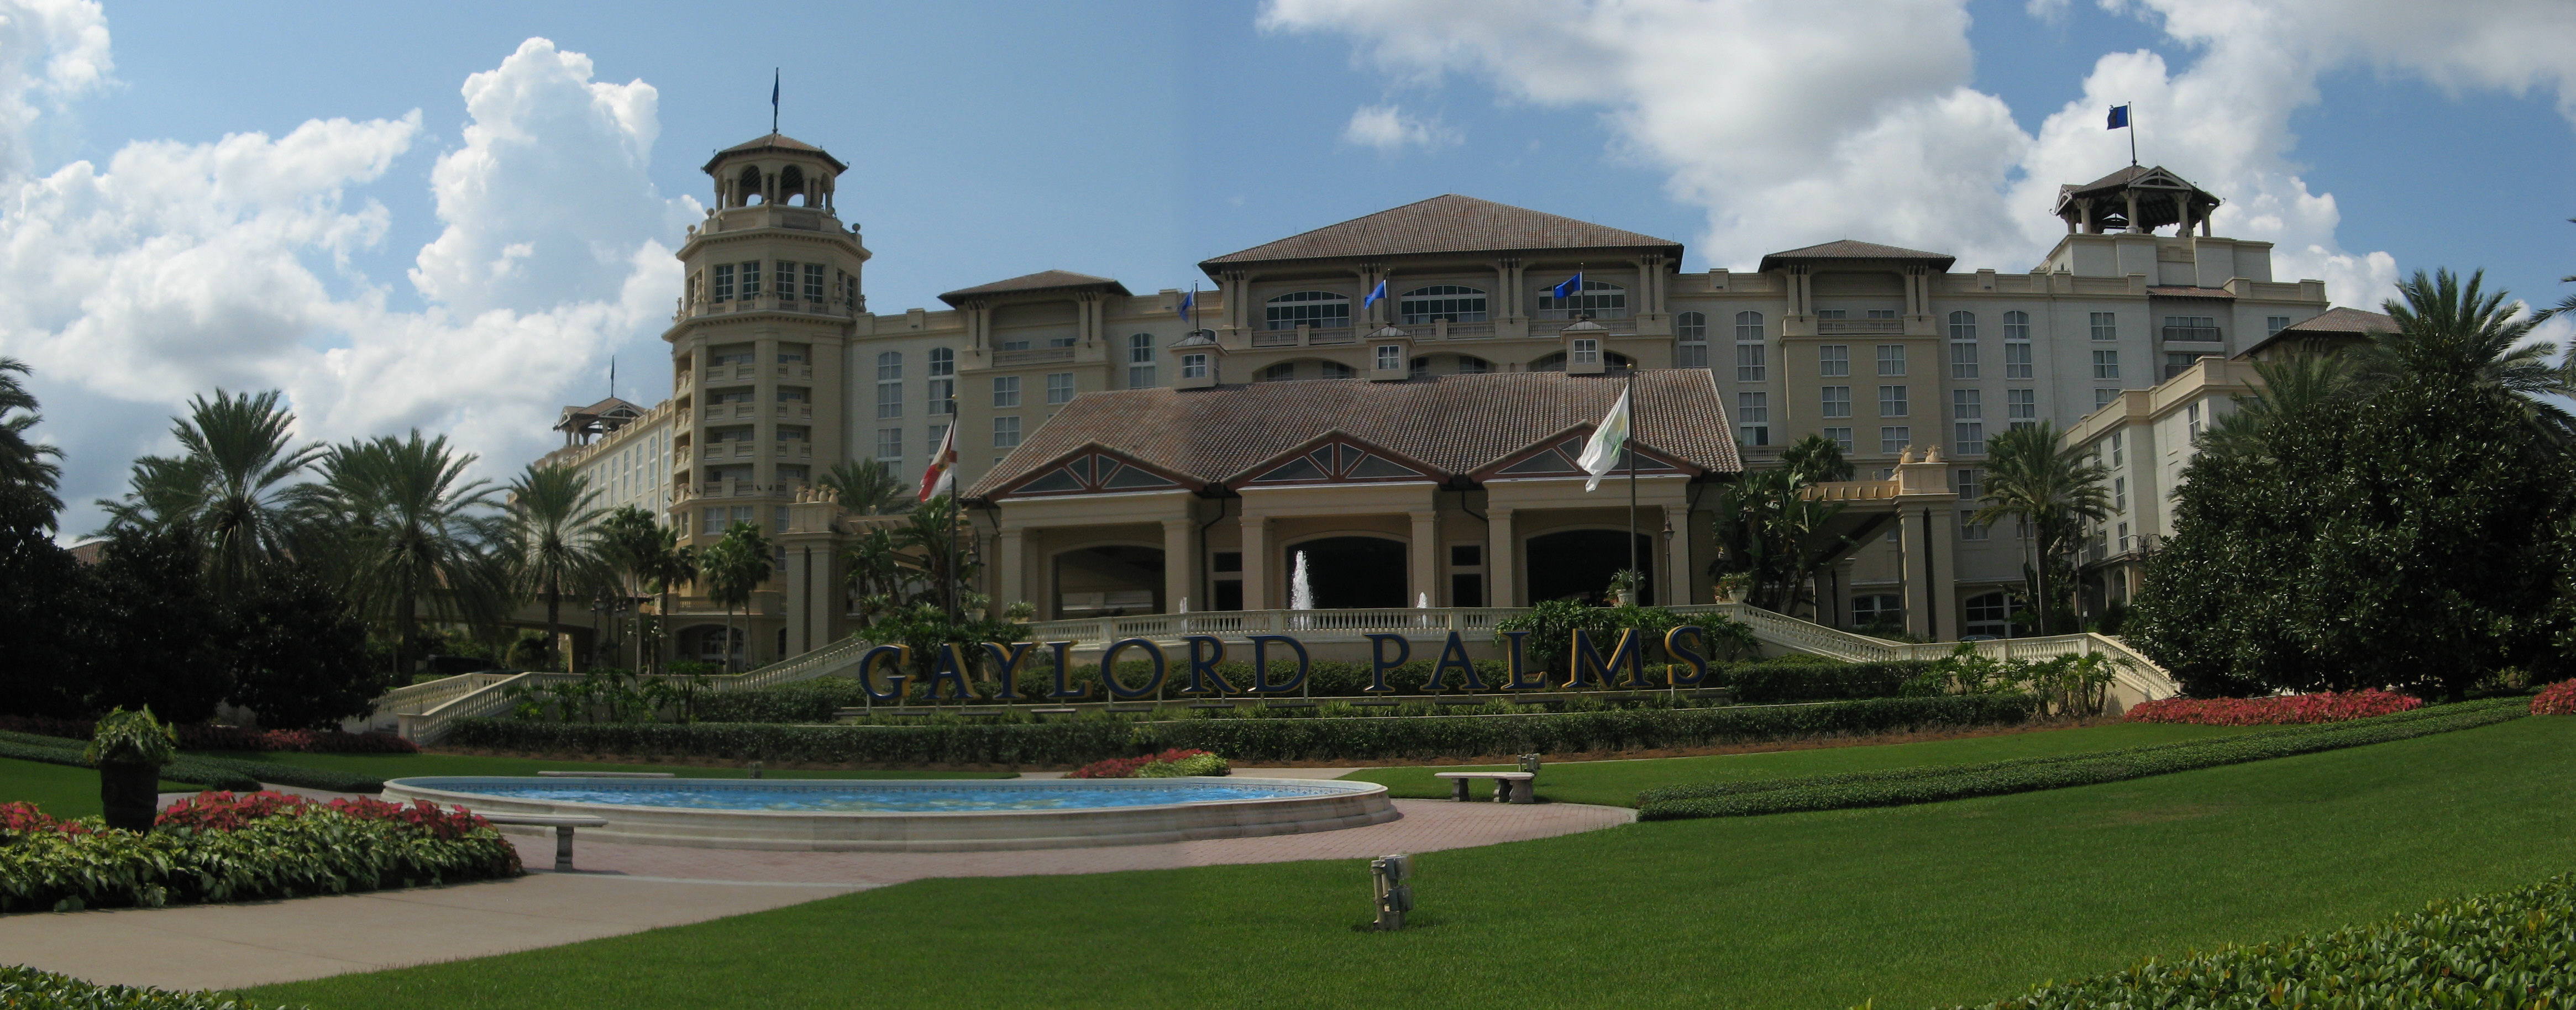 Panorama.Gaylord_Palms_Front